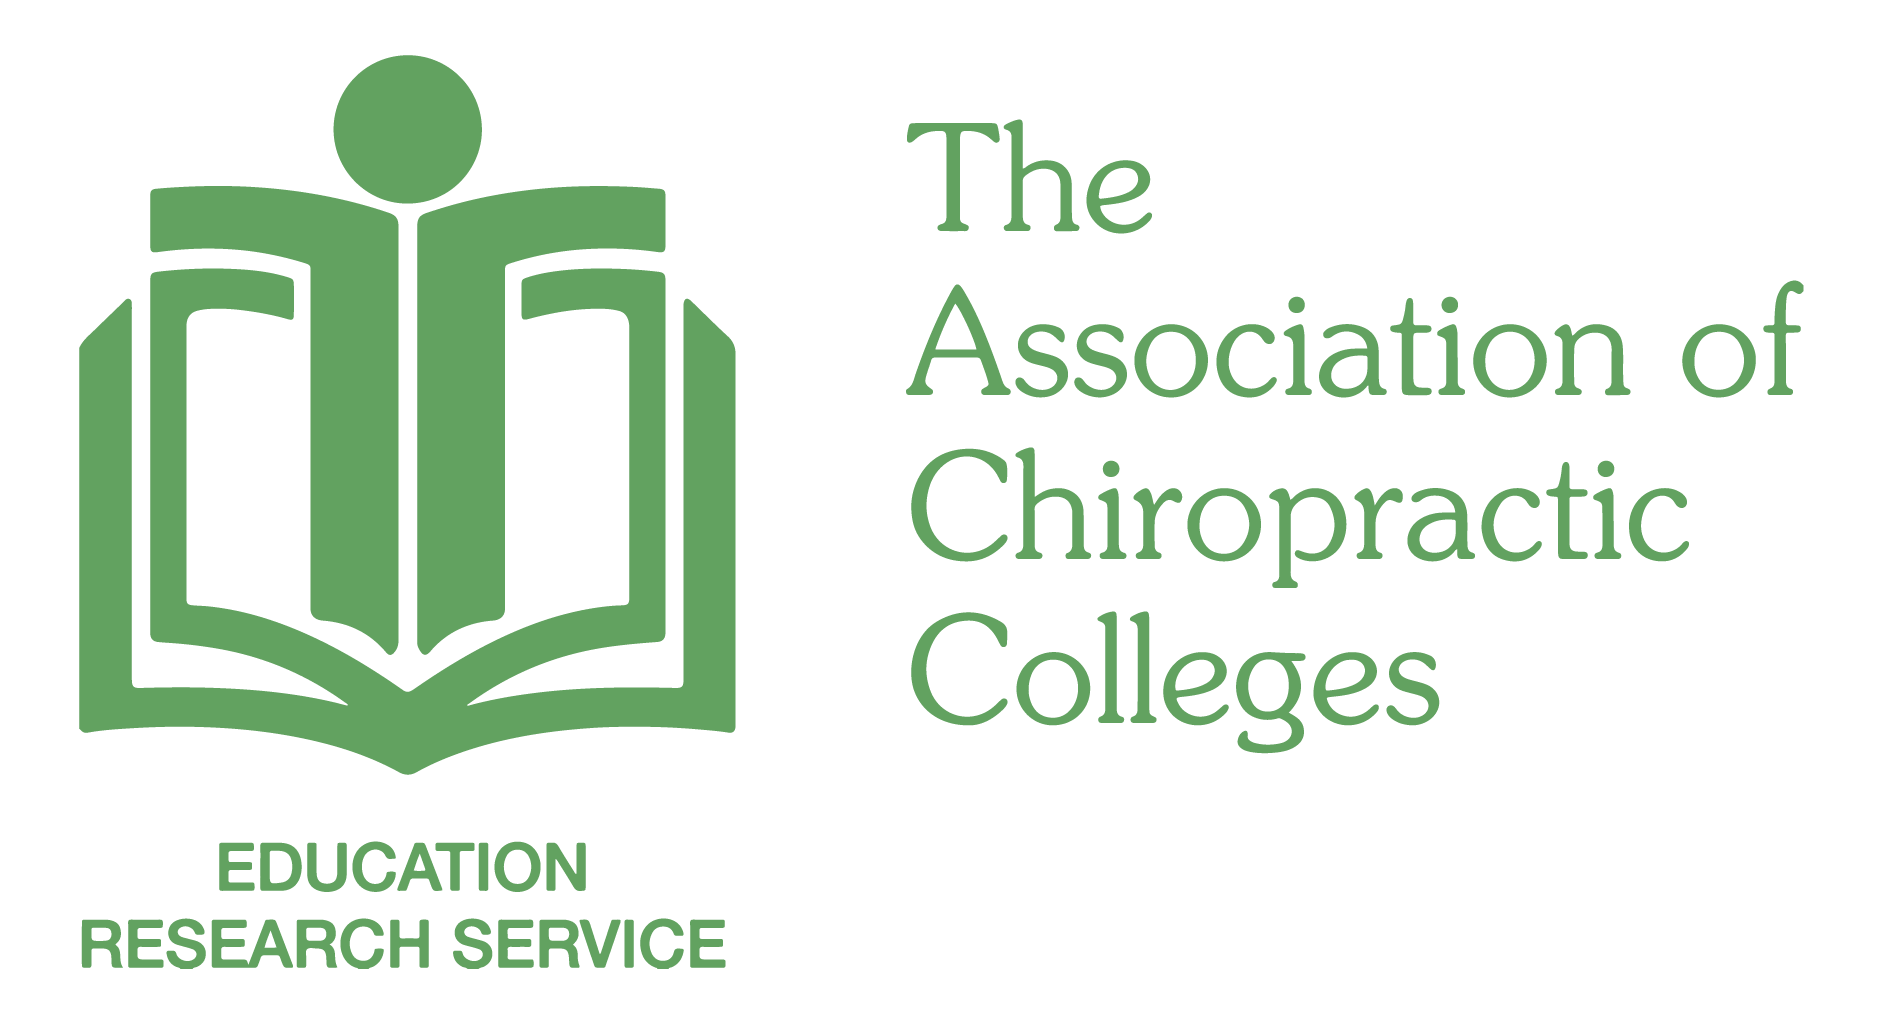 Association of Chiropractic Colleges.png